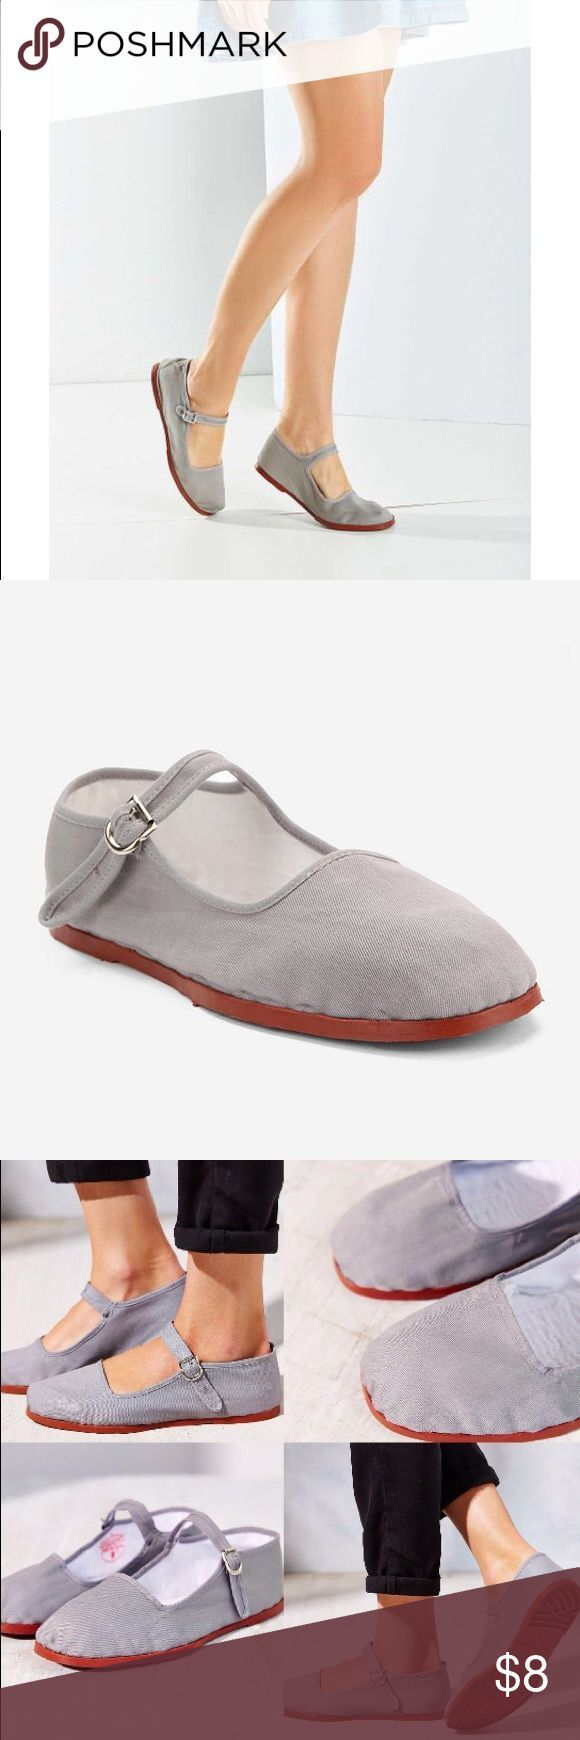 Tendance Chaussures 2017/ 2018 : Cotton Mary Jane Flat Super comfortable and cute cotton Mary Jane flats from Urb...